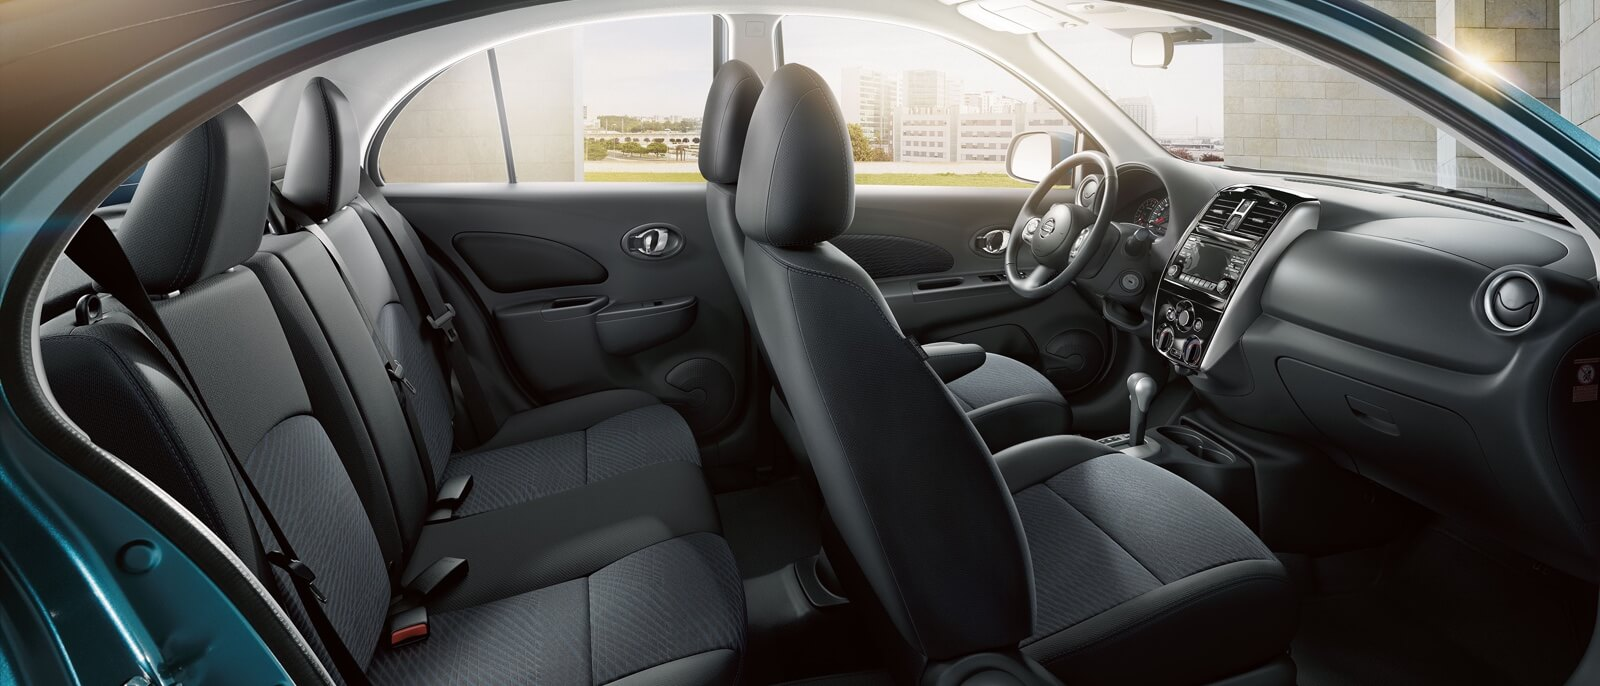 2016 Nissan Micra interior seating